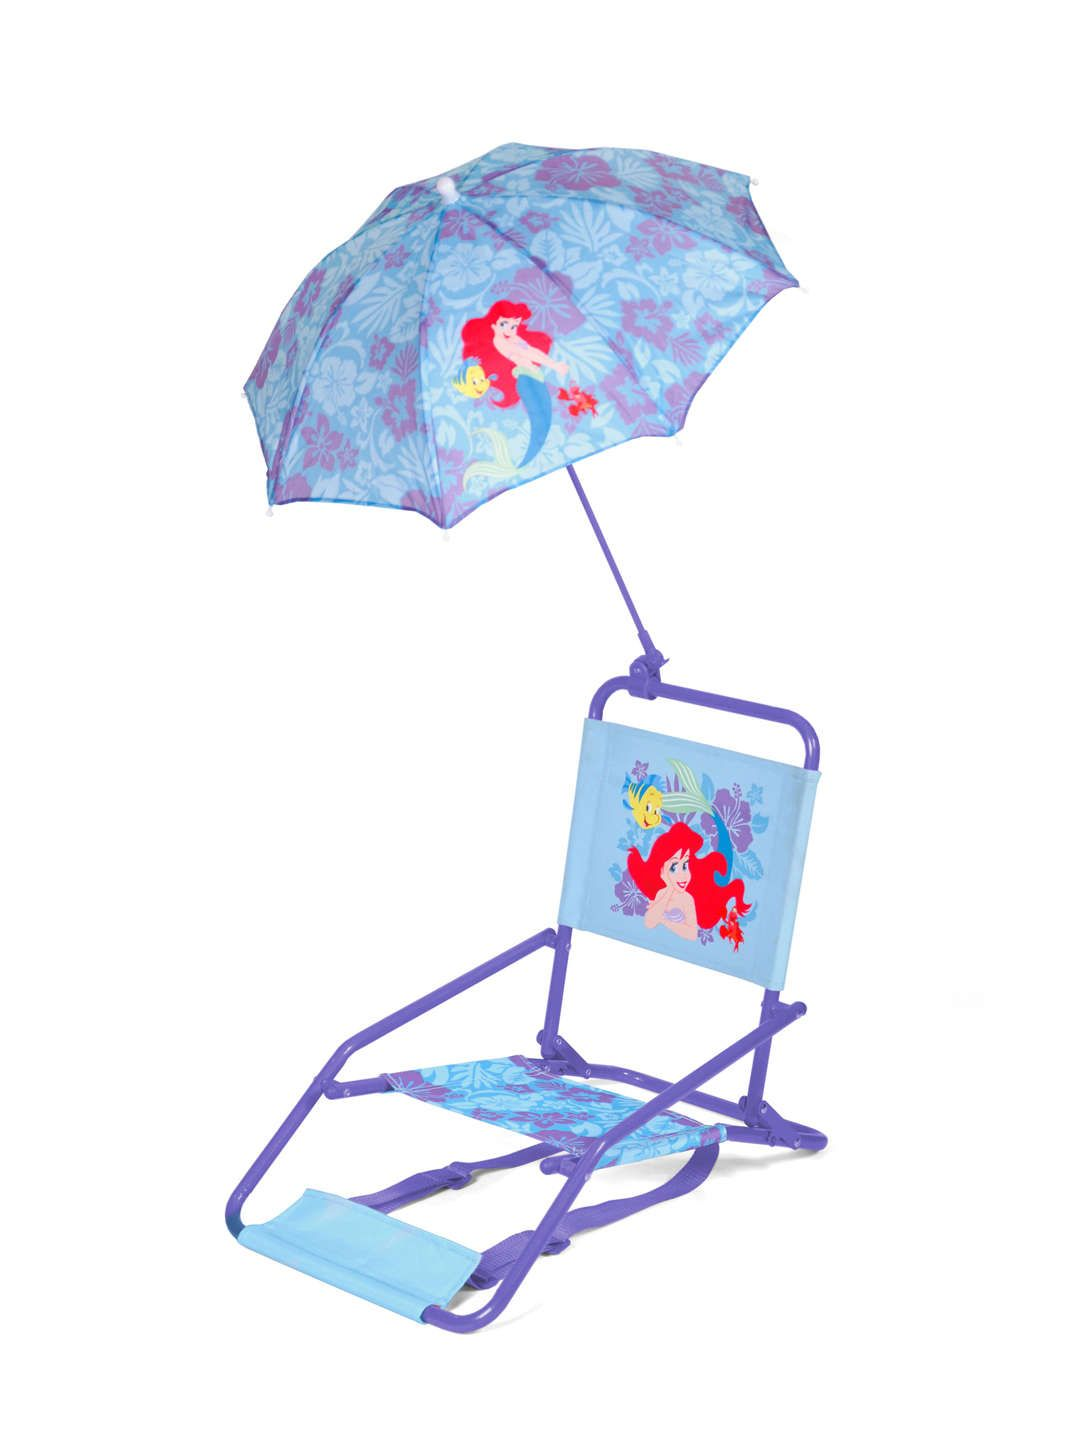 Toddler Beach Chair Personalized How To Install Hanging Disney Ariel With Umbrella | Chairs And